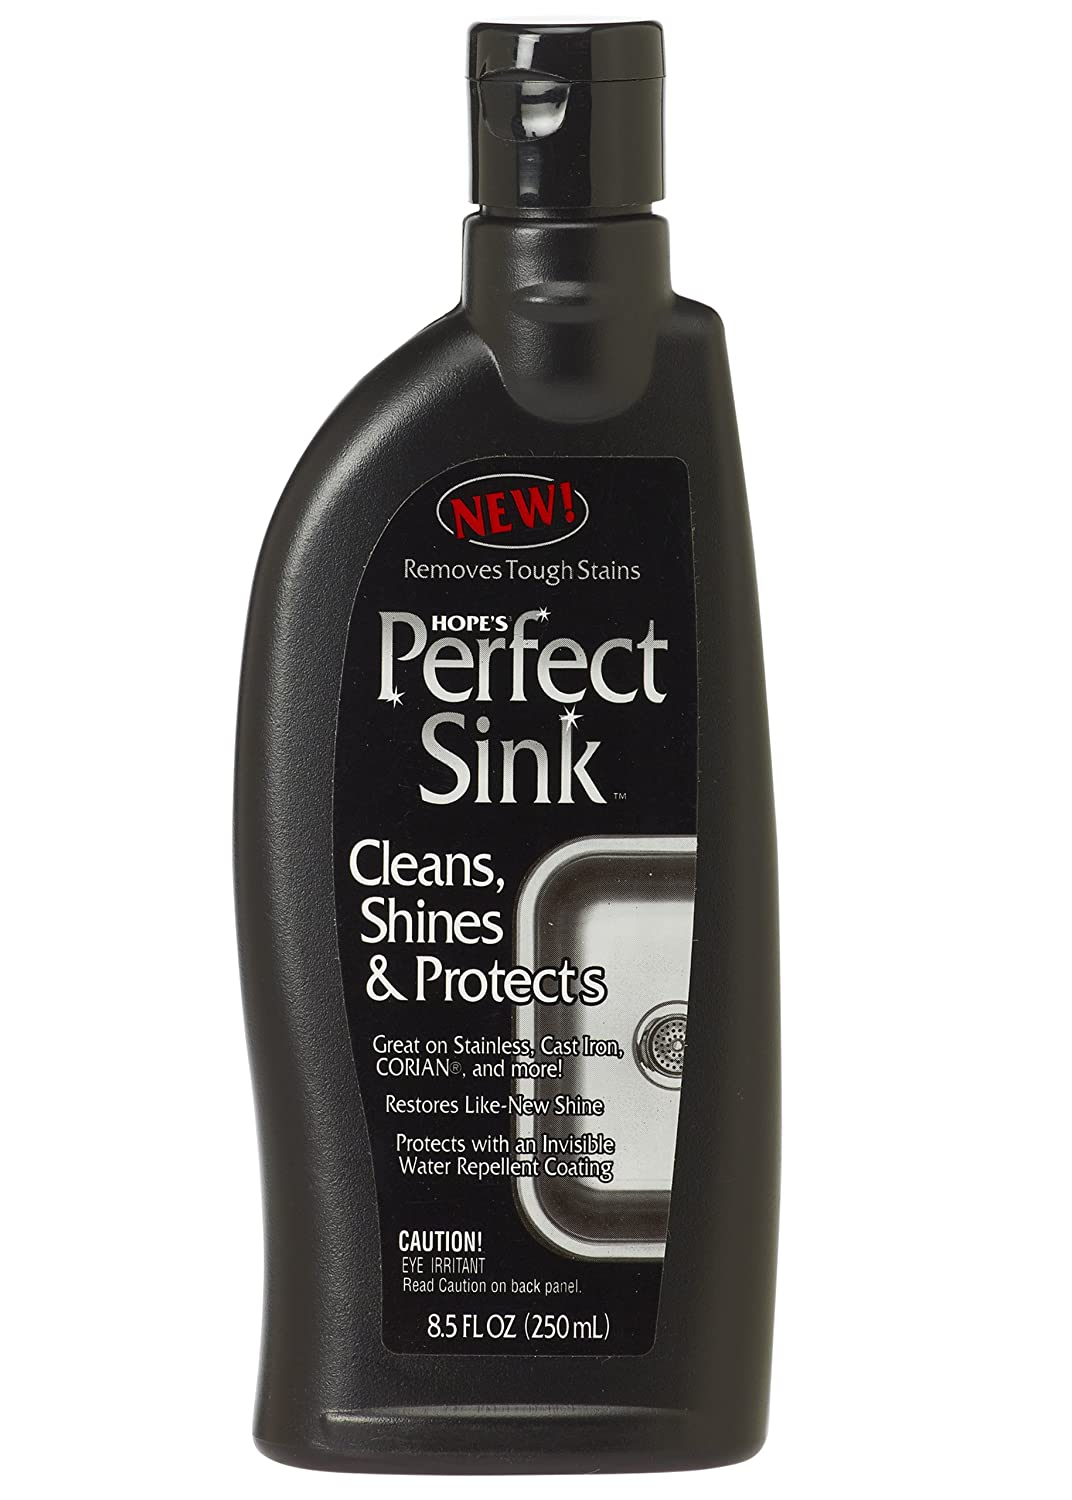 Hope's Perfect Sink - 8.5 oz Sink Cleaner and Polish, Restorative, Water-Repellant Formula, Removes Stains, Good for Brushed Stainless Steel, Cast Iron, Porcelain, Corian, Composite, Acrylic, Vitreous China